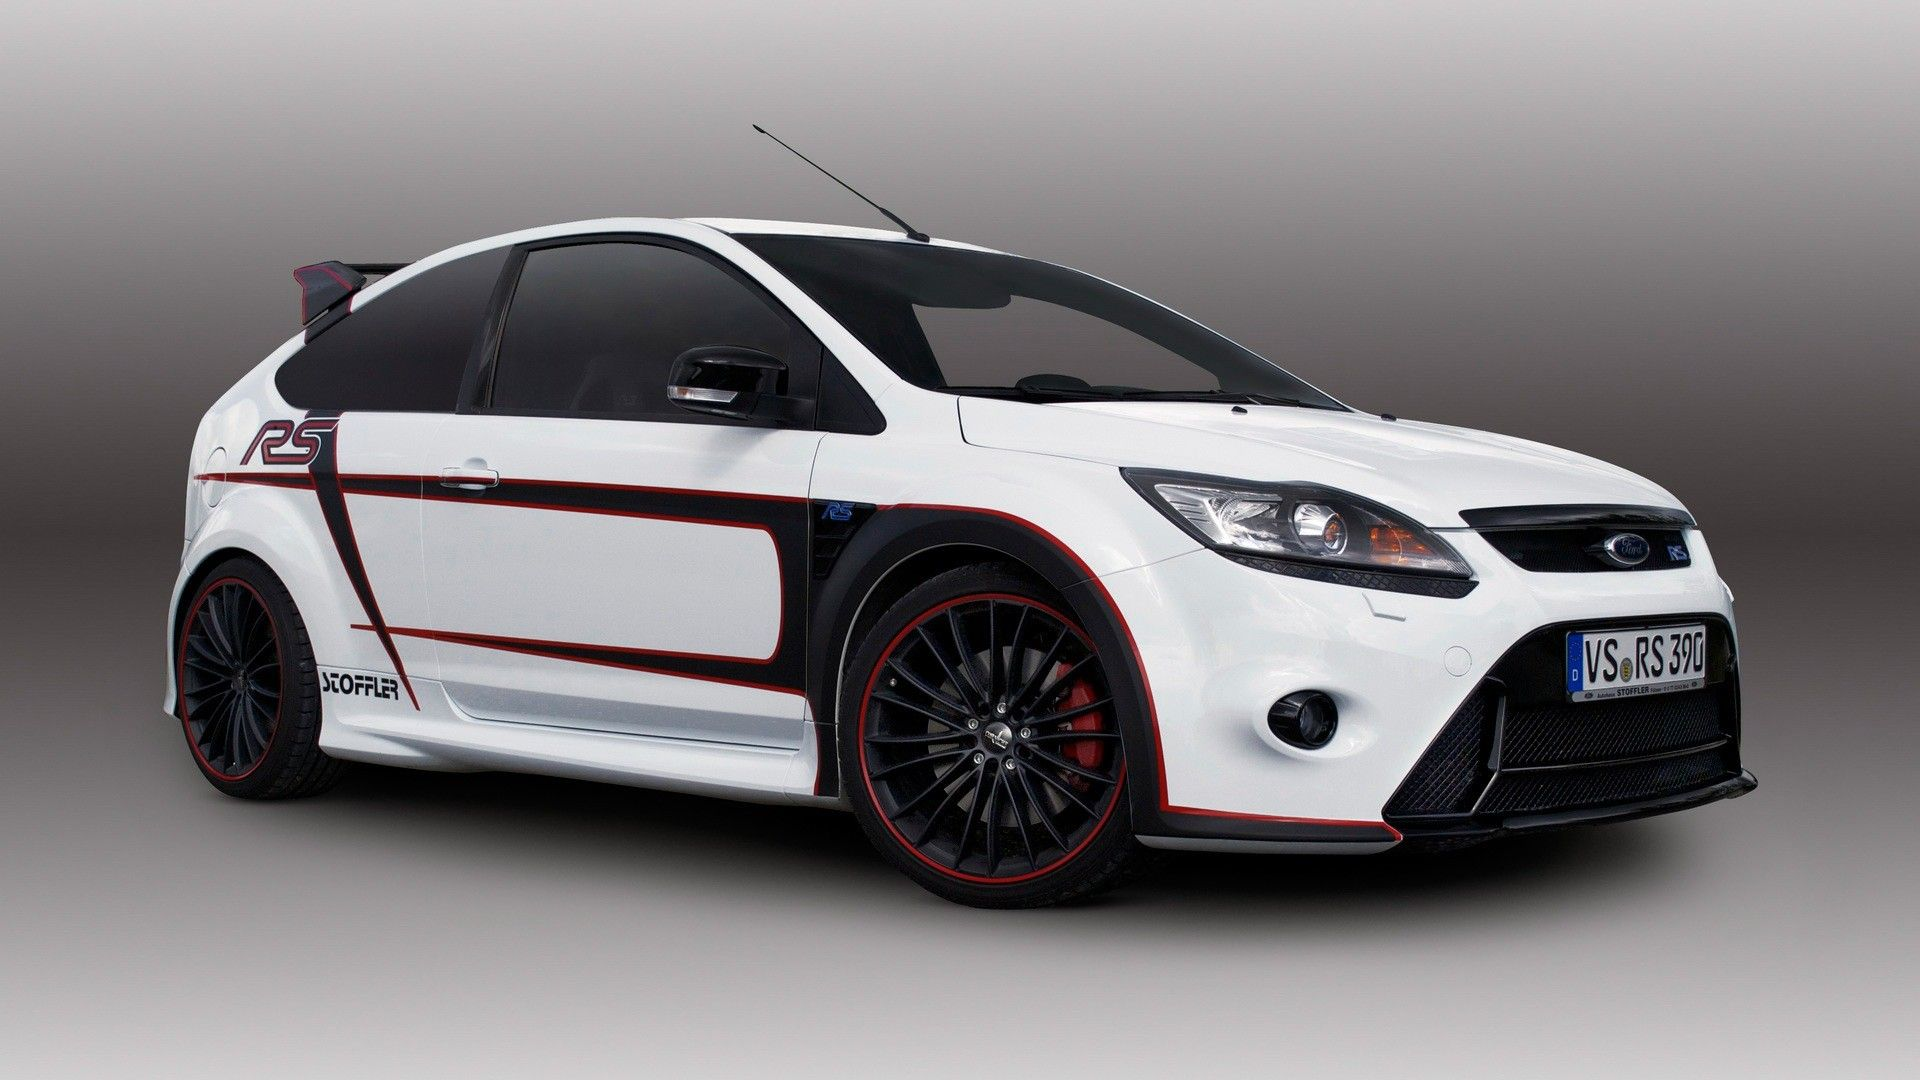 Ford Focus Rs Hd Wallpaper Http 1sthdwallpapers Com Ford Focus Rs Hd Wallpapers Ford Focus Ford Focus Rs Focus Rs